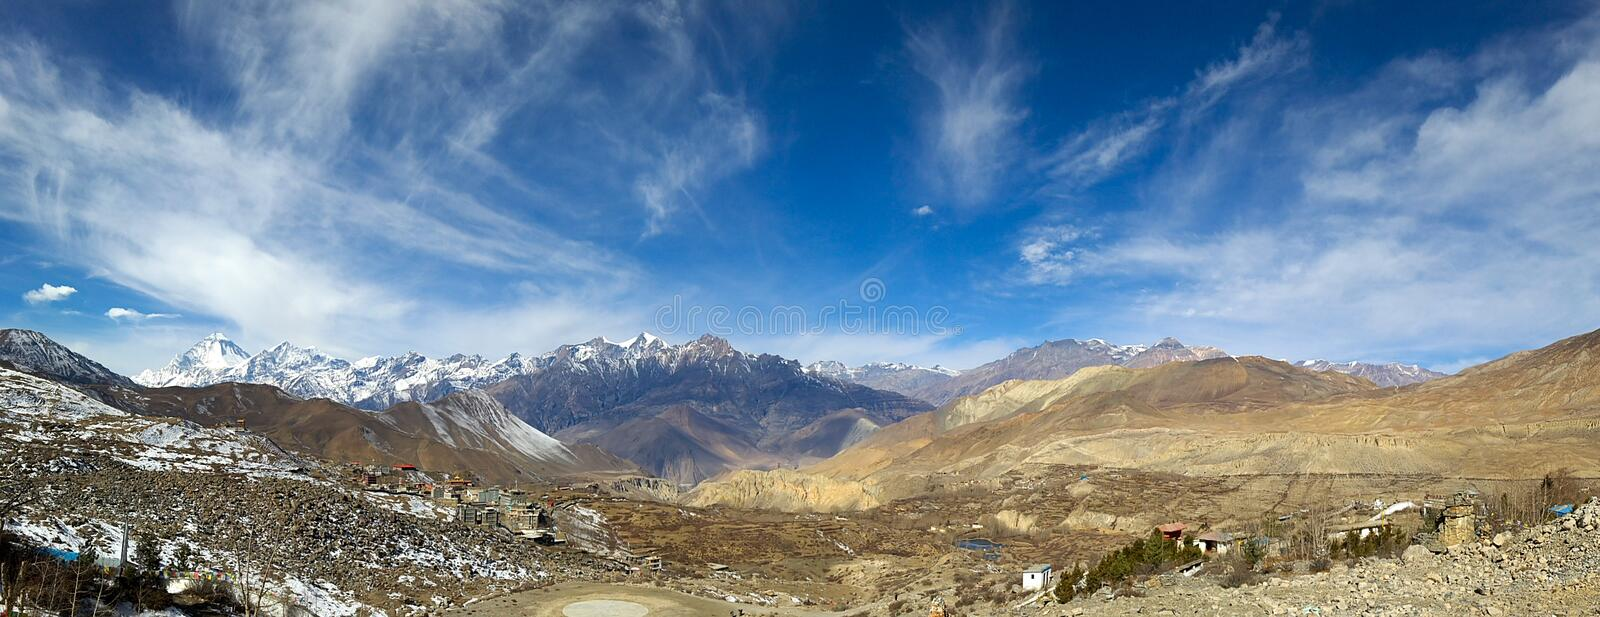 Jarkhot Village in Muktinath Valley. The small village of Jarkhot in the Muktinath Valley in the Mustang region of Nepal royalty free stock images